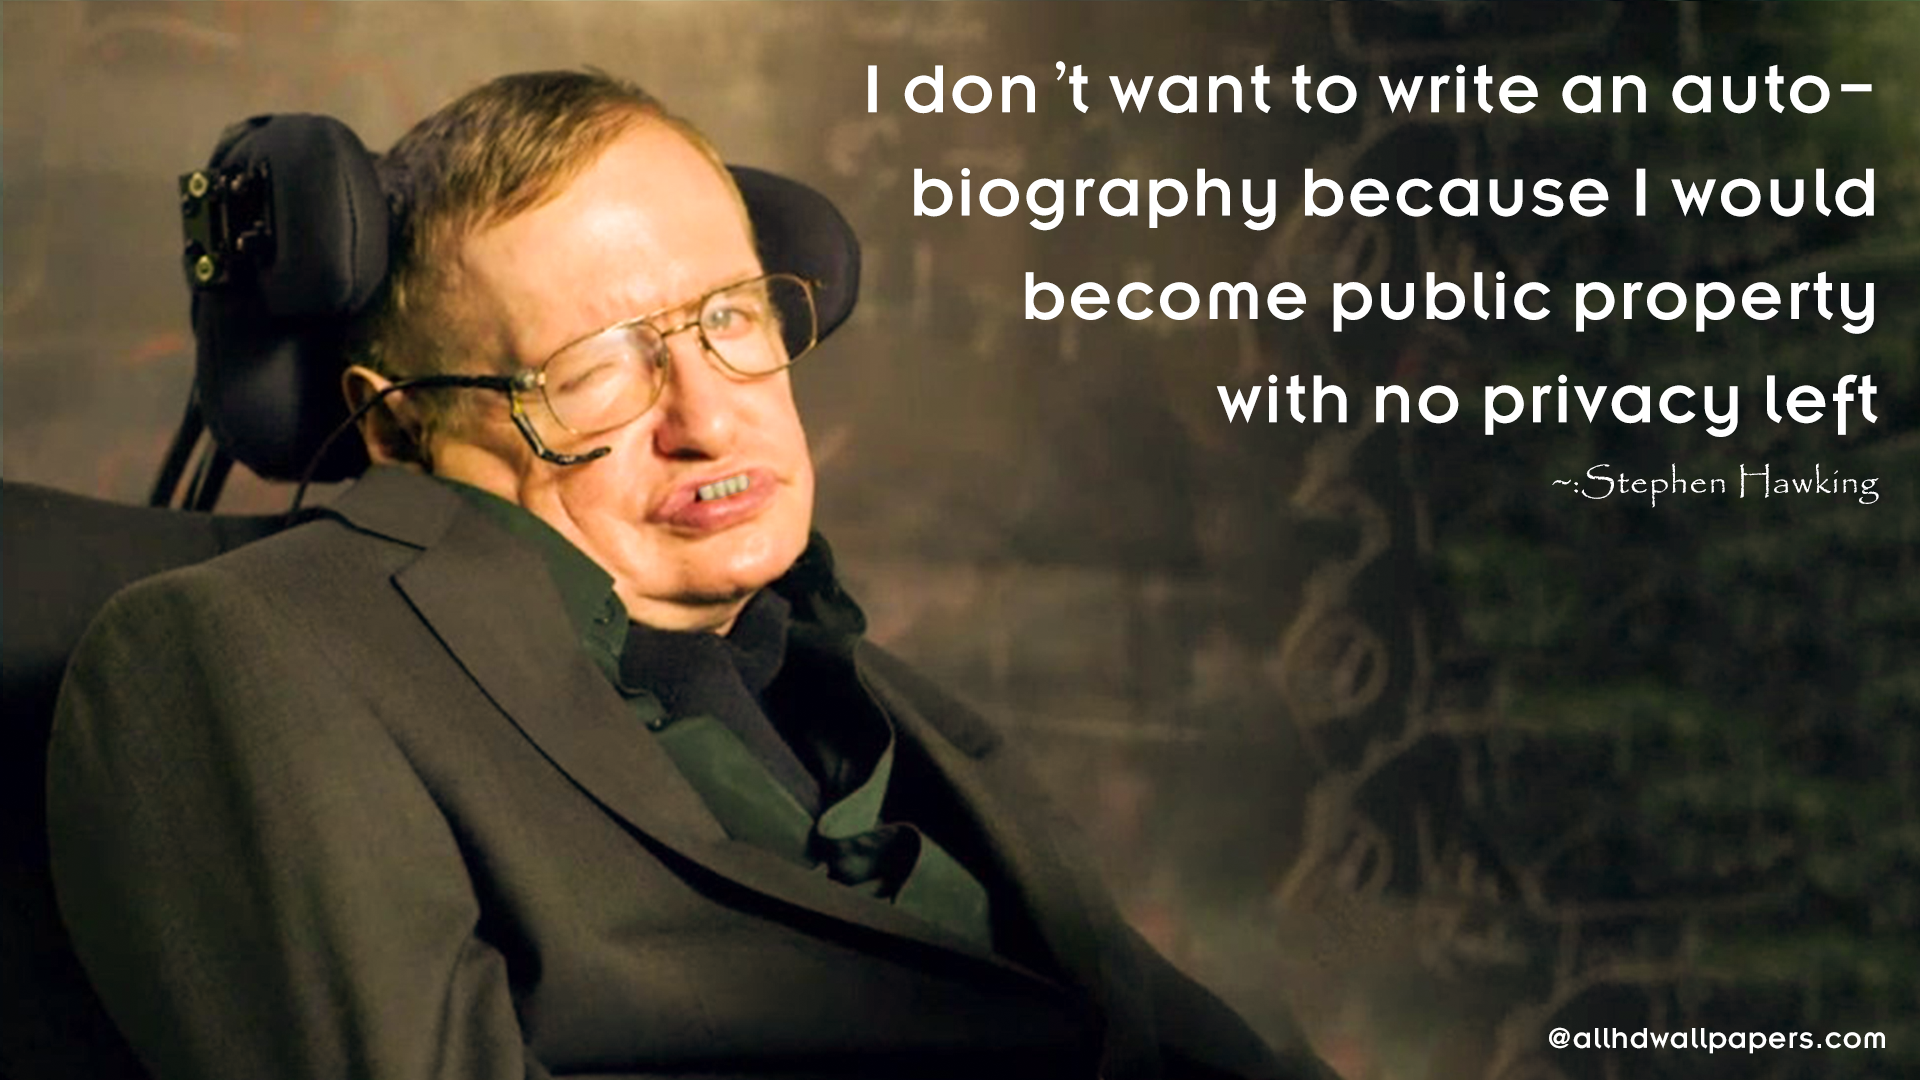 Stephen Hawking Quote Wallpaper8